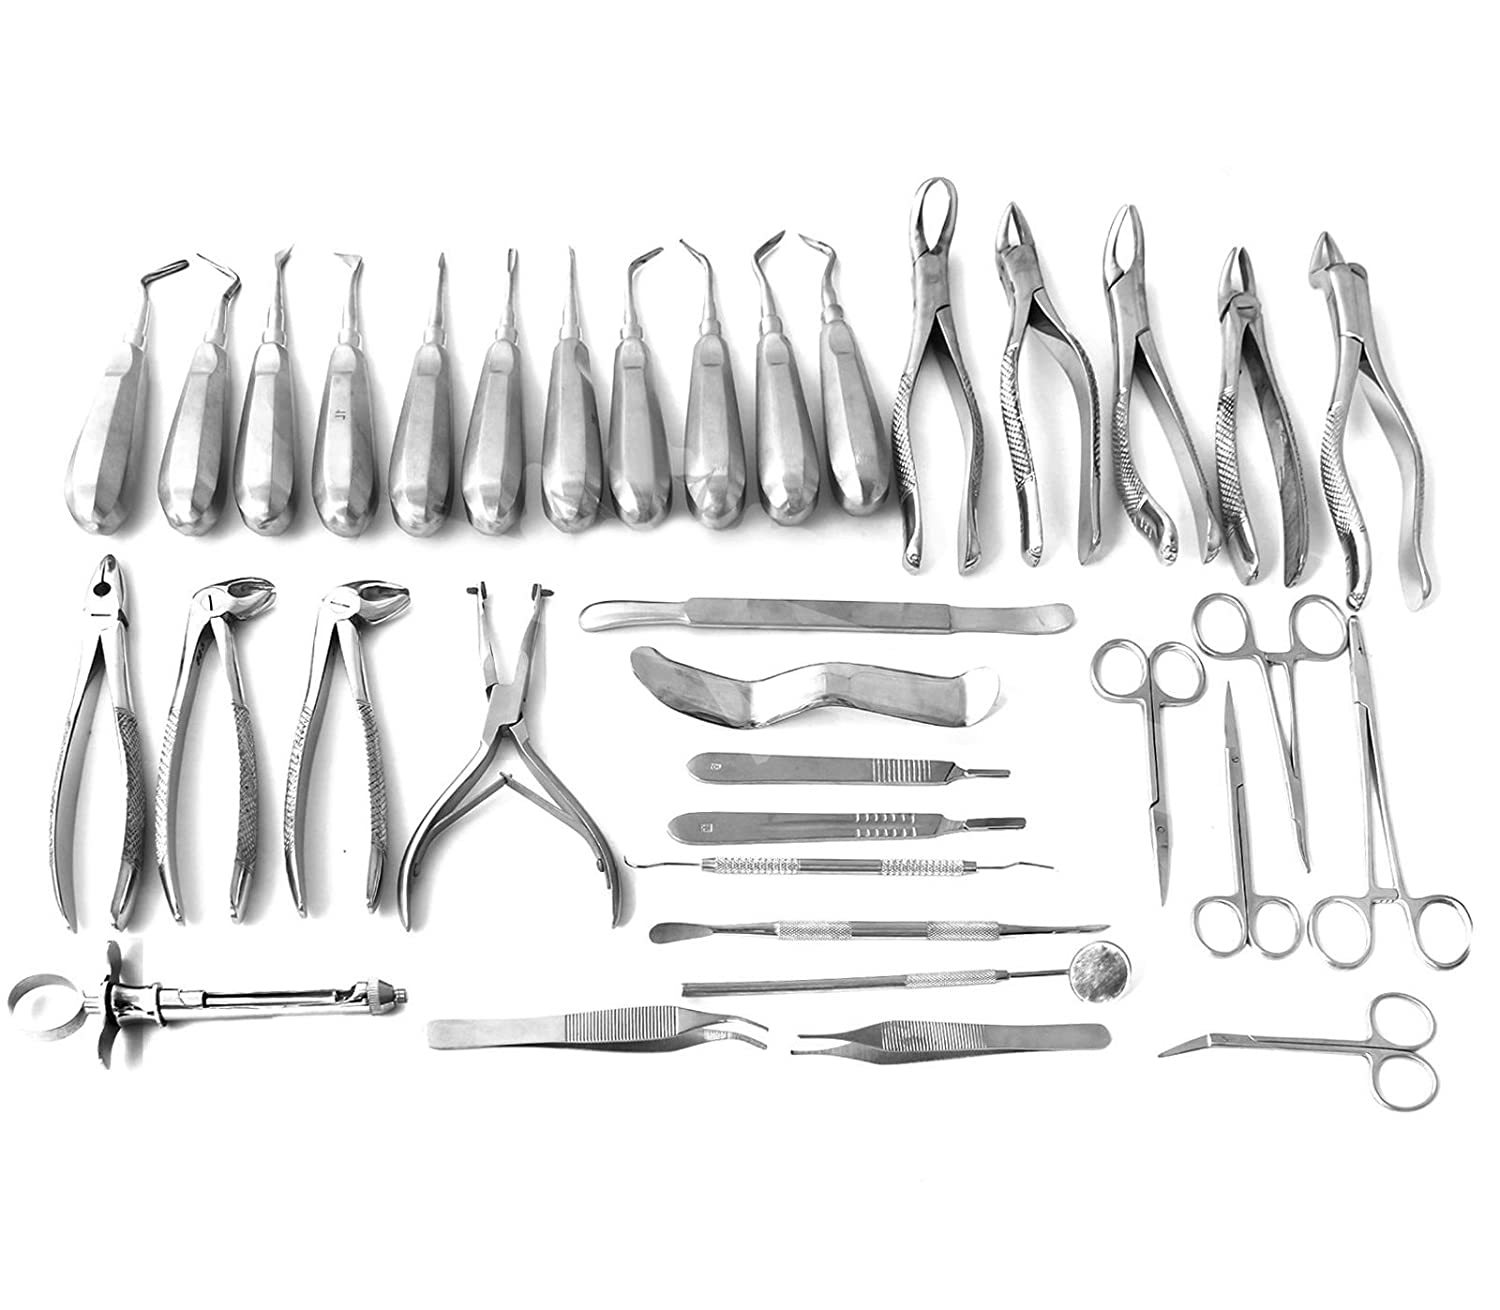 35 PCS ORAL DENTAL EXTRACTION EXTRACTING ELEVATORS FORCEPS BY SURGICALONLINE